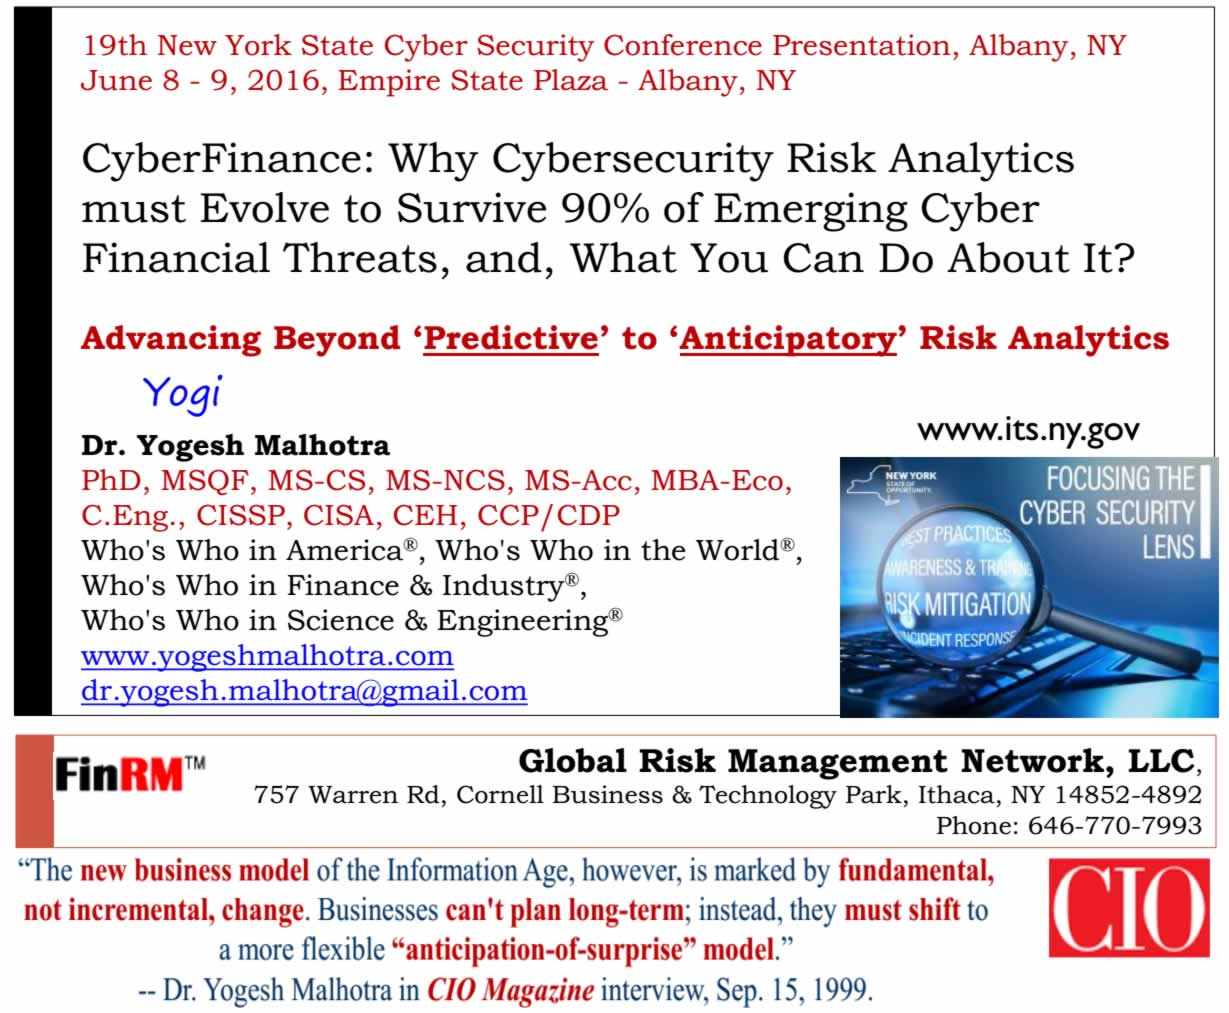 2016 New York State Cyber Security Conference